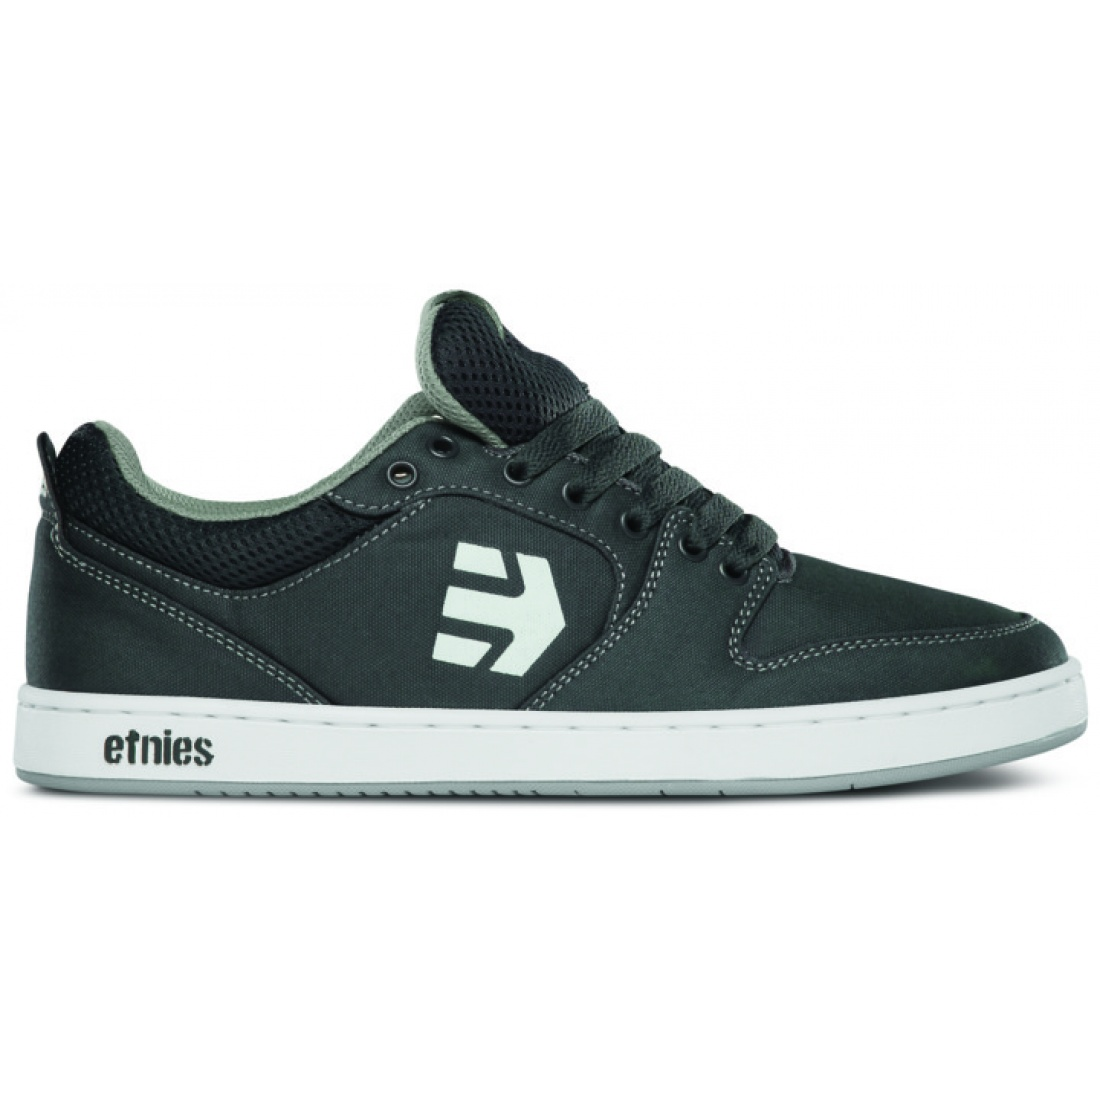 ETN-Verano Grey Shoes